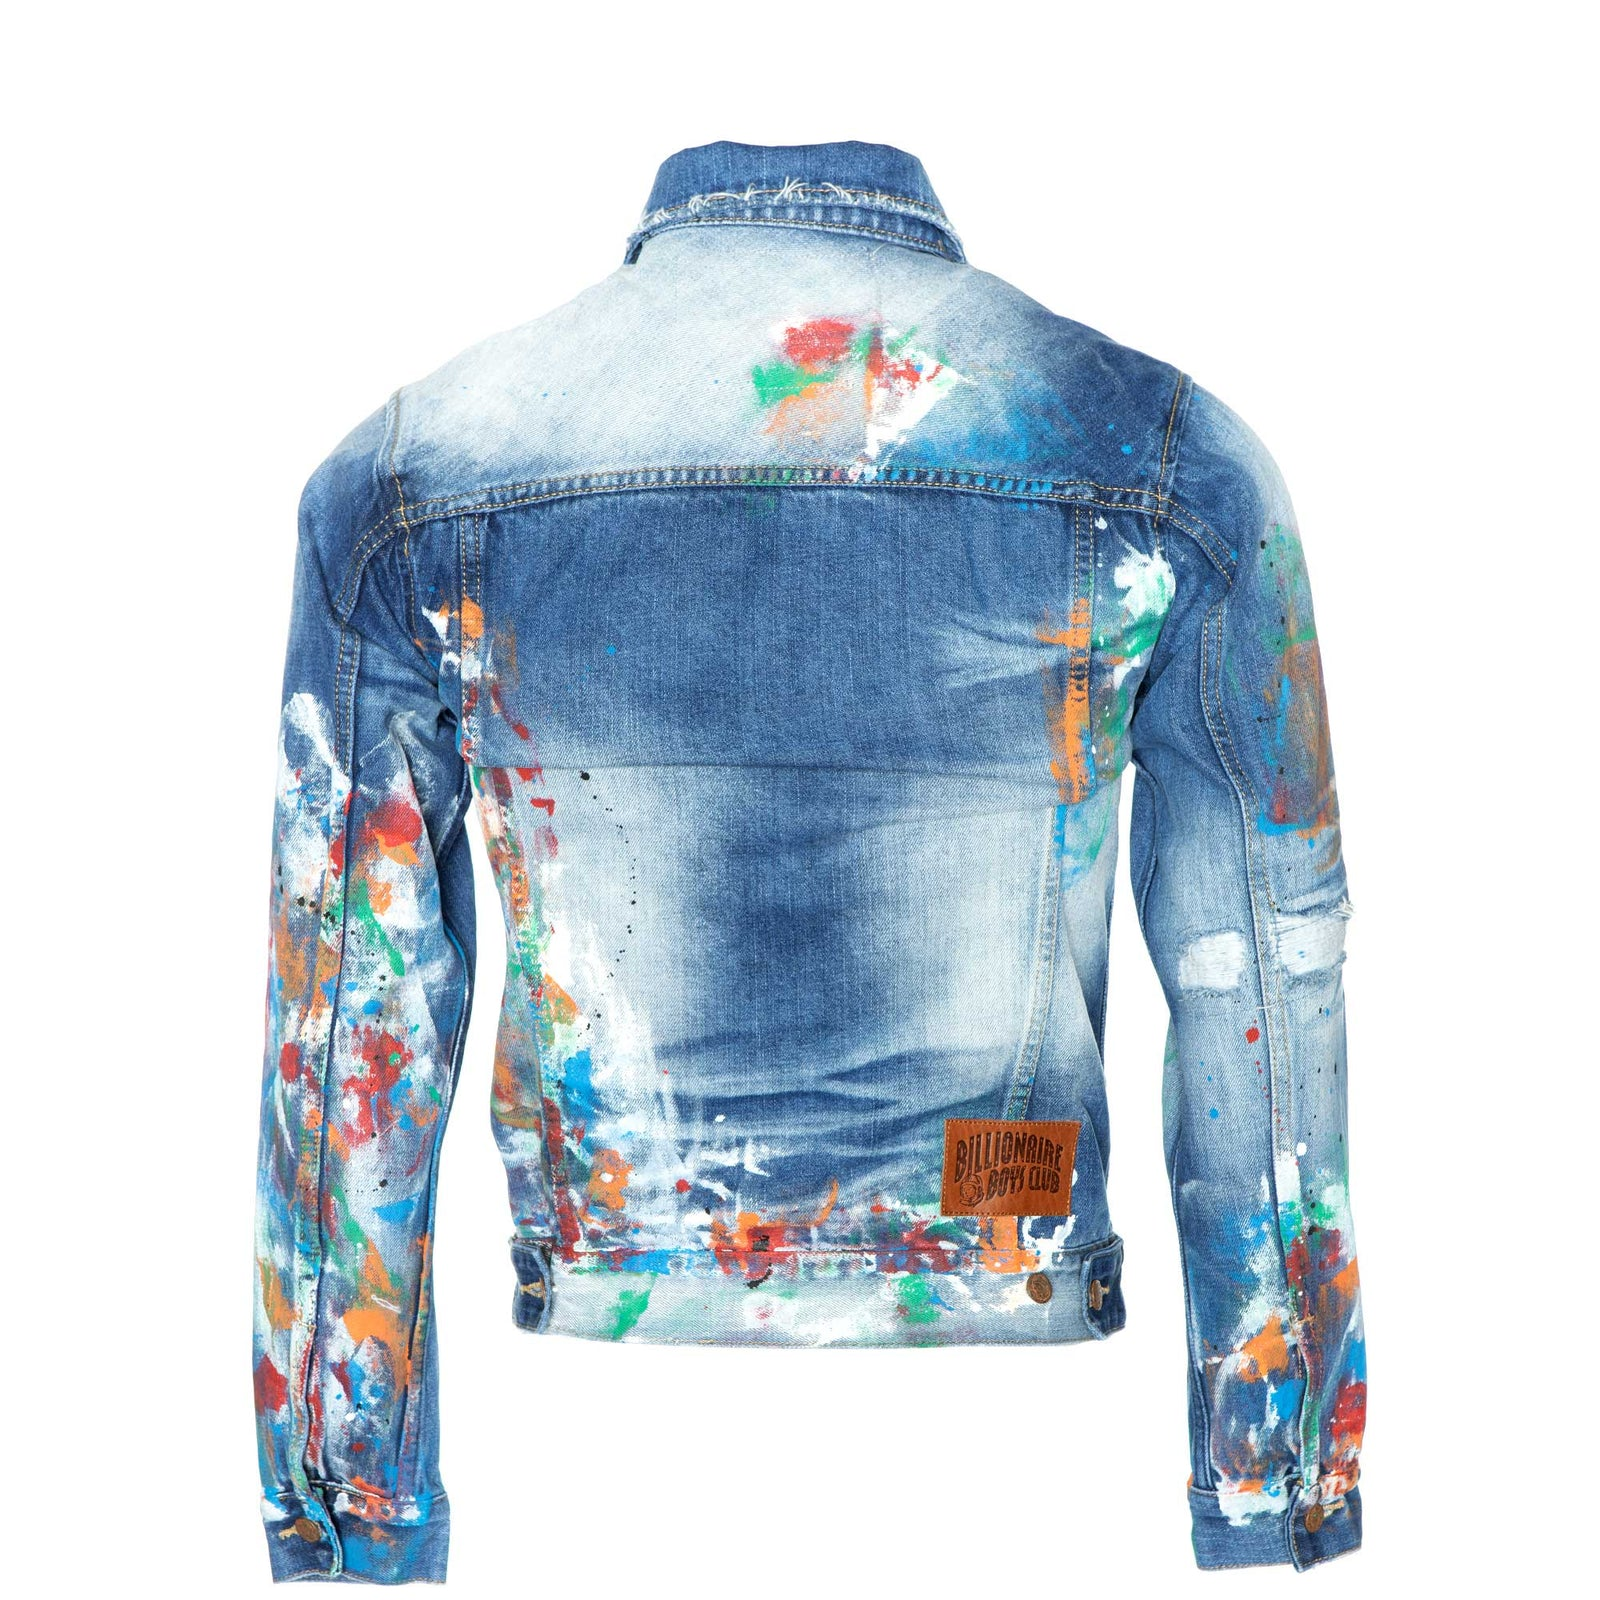 Exhaust Denim Jacket